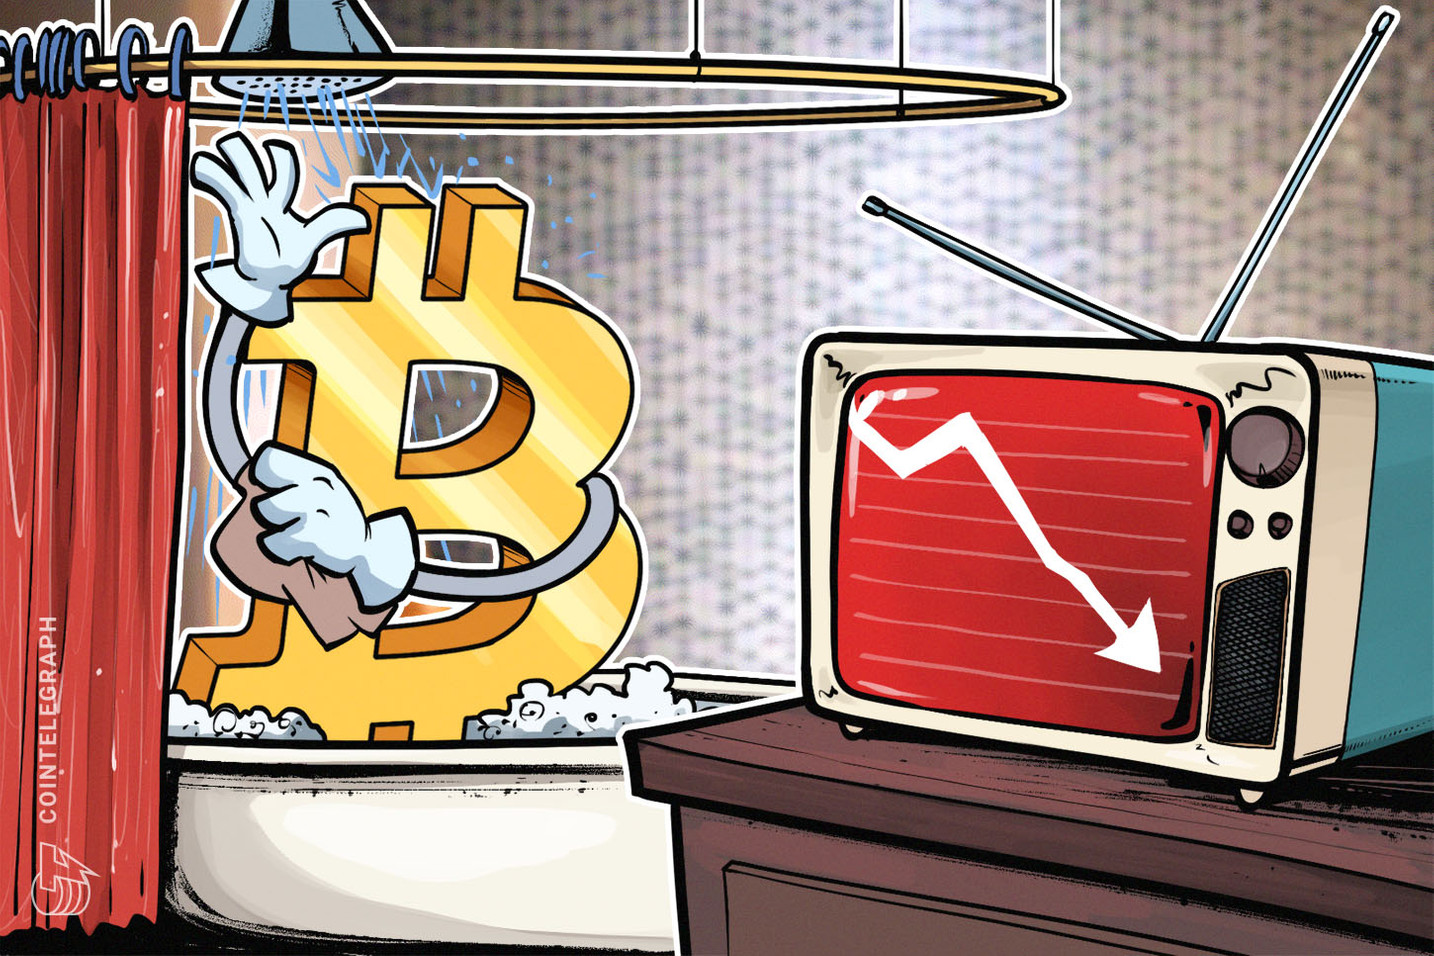 Bad Day for Stocks Sends Bitcoin Price Below Key $9.3K Support